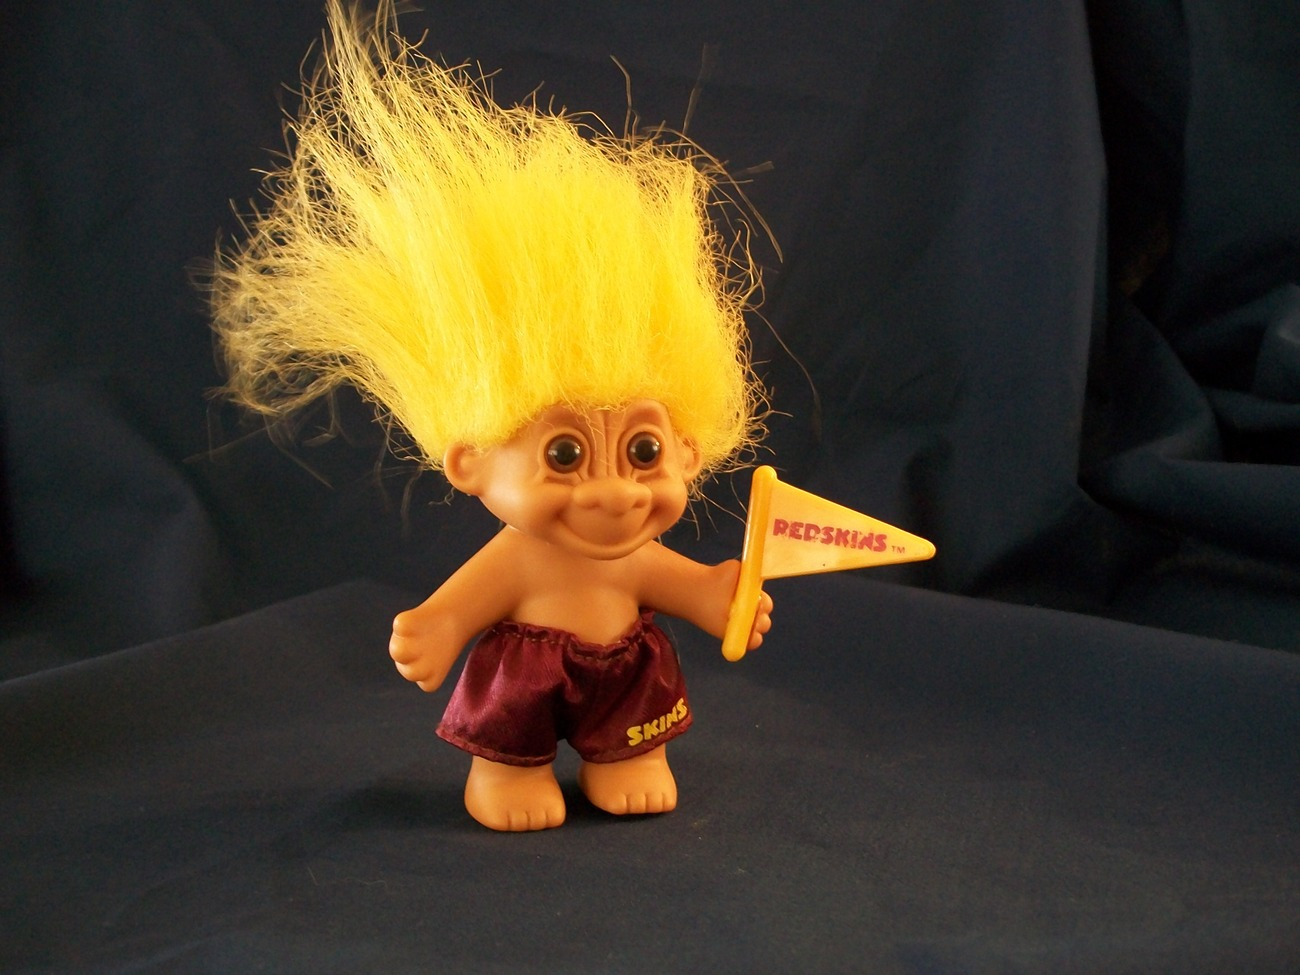 Cute Russ Redskins Good Luck Troll Doll